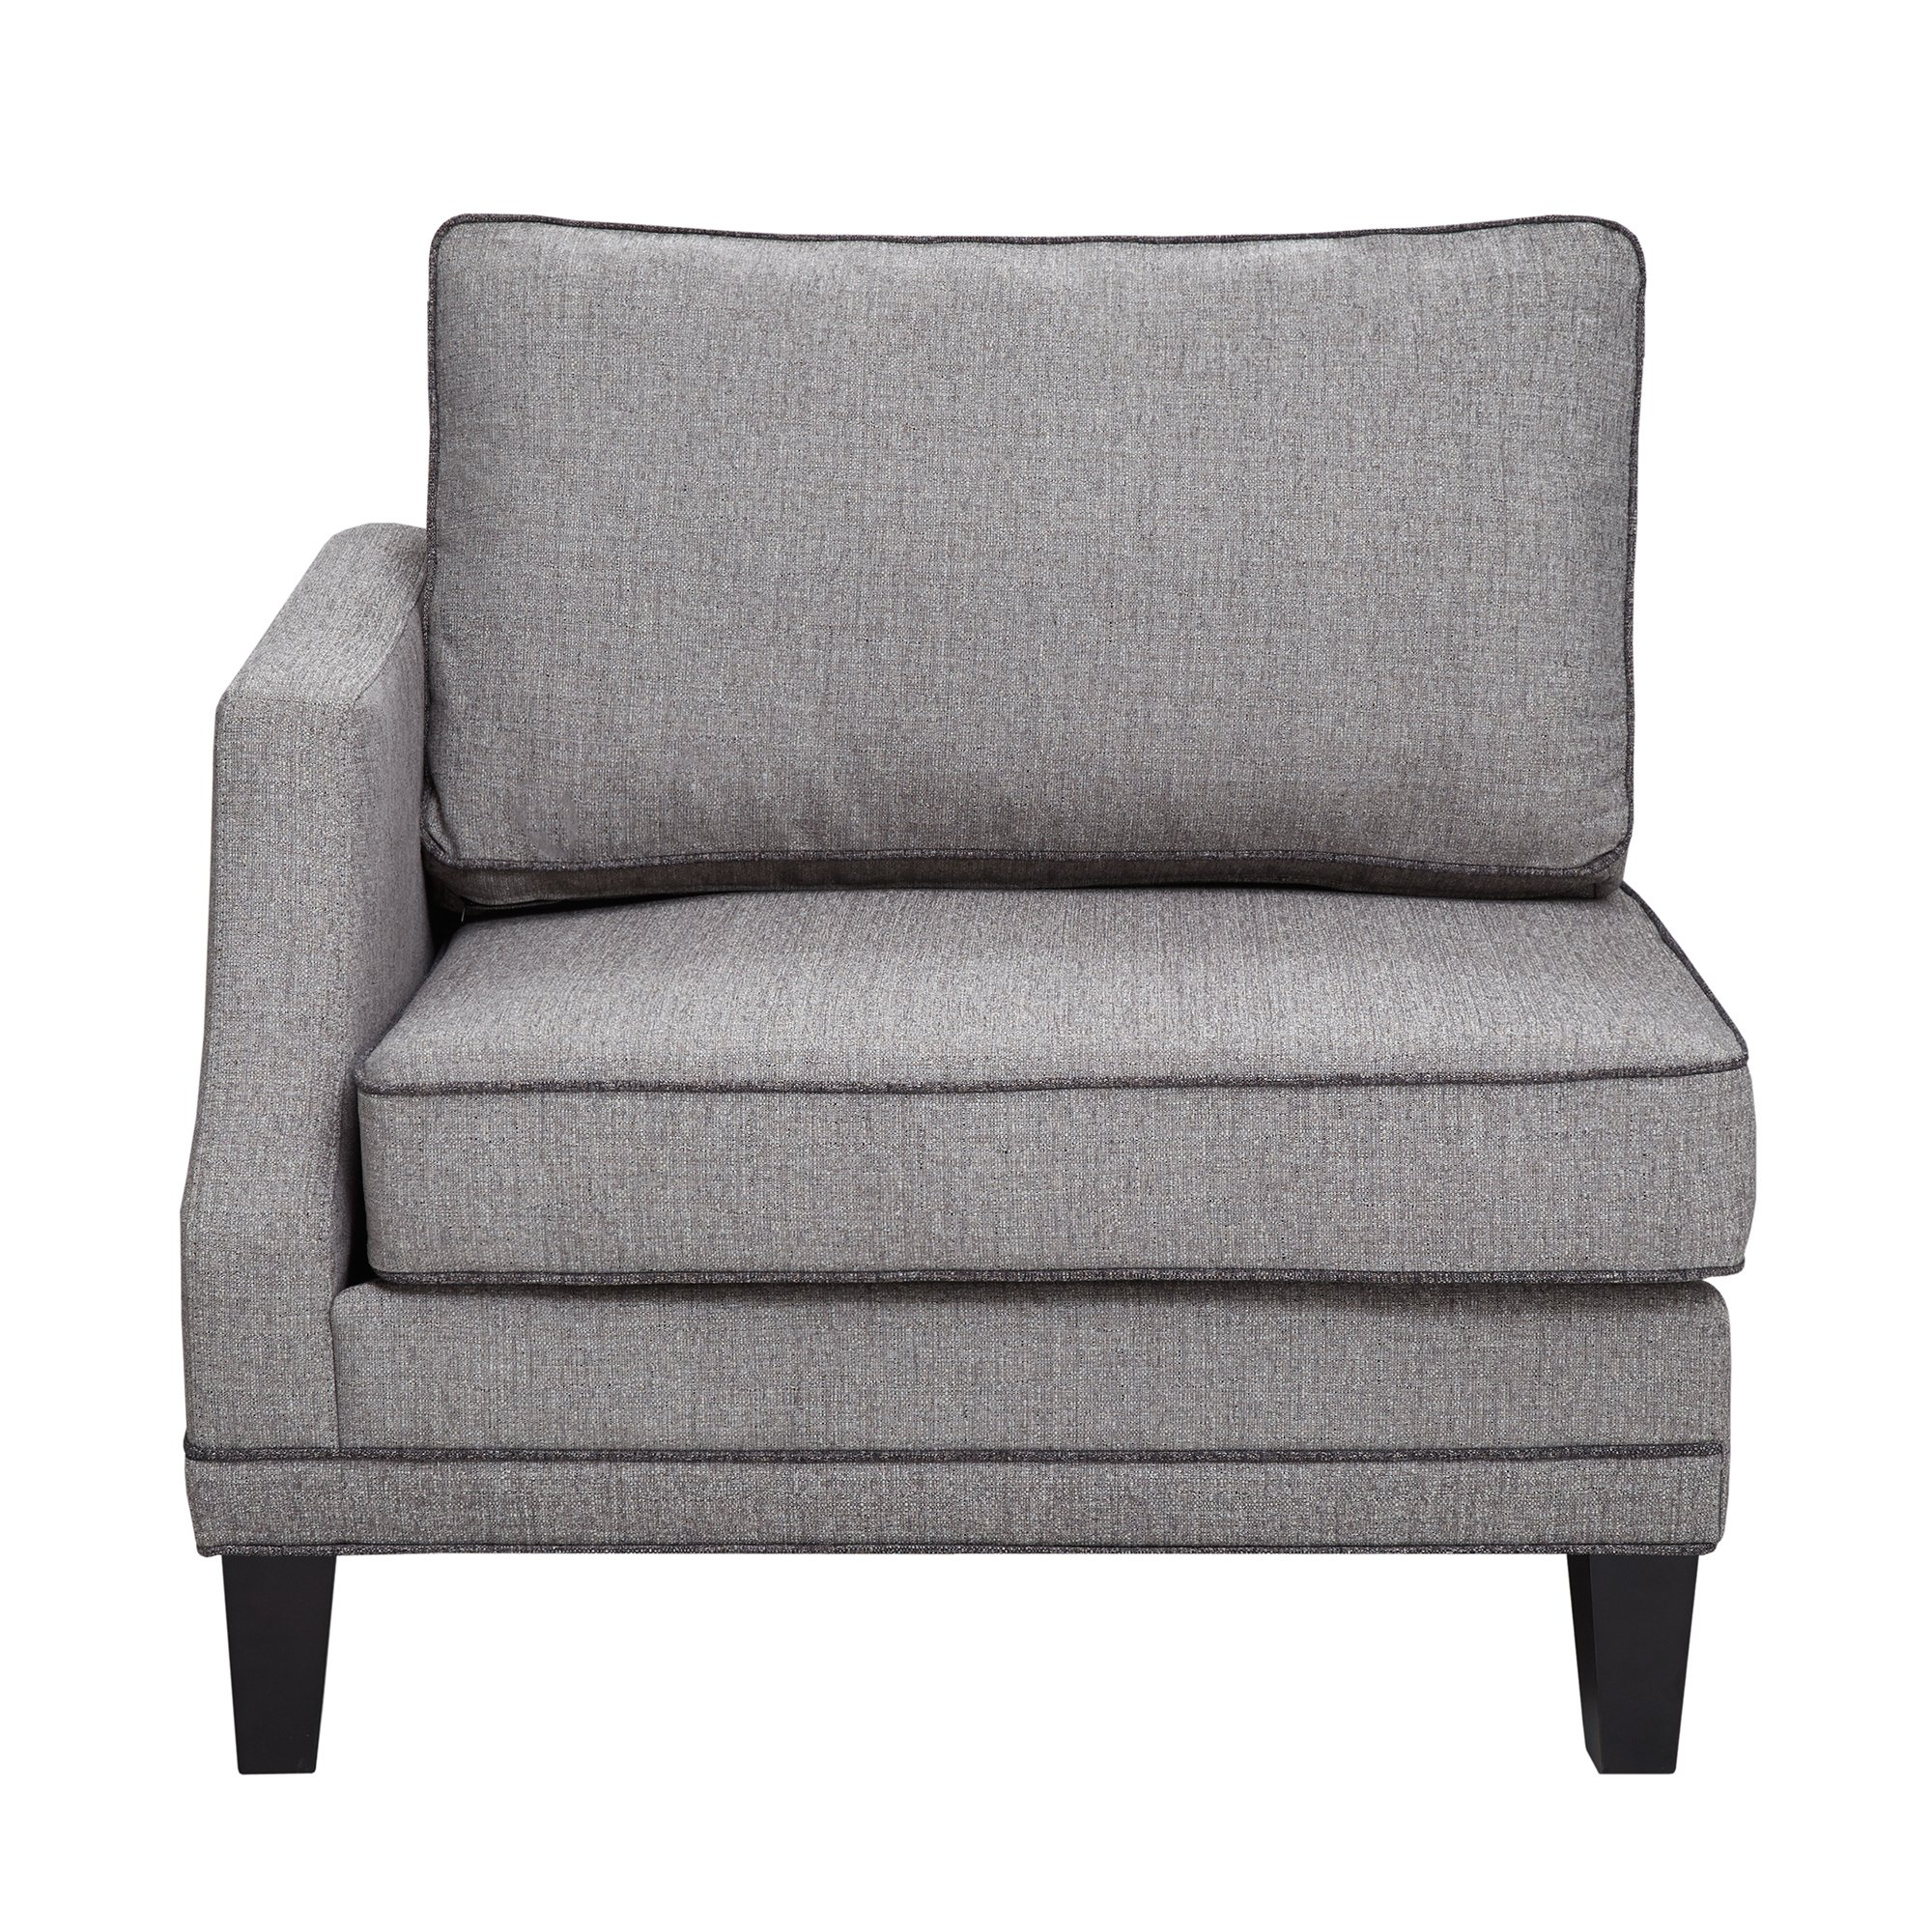 Shop Madison Park Signature Gordon Grey Modular Sectional Sofa Left inside Gordon Arm Sofa Chairs